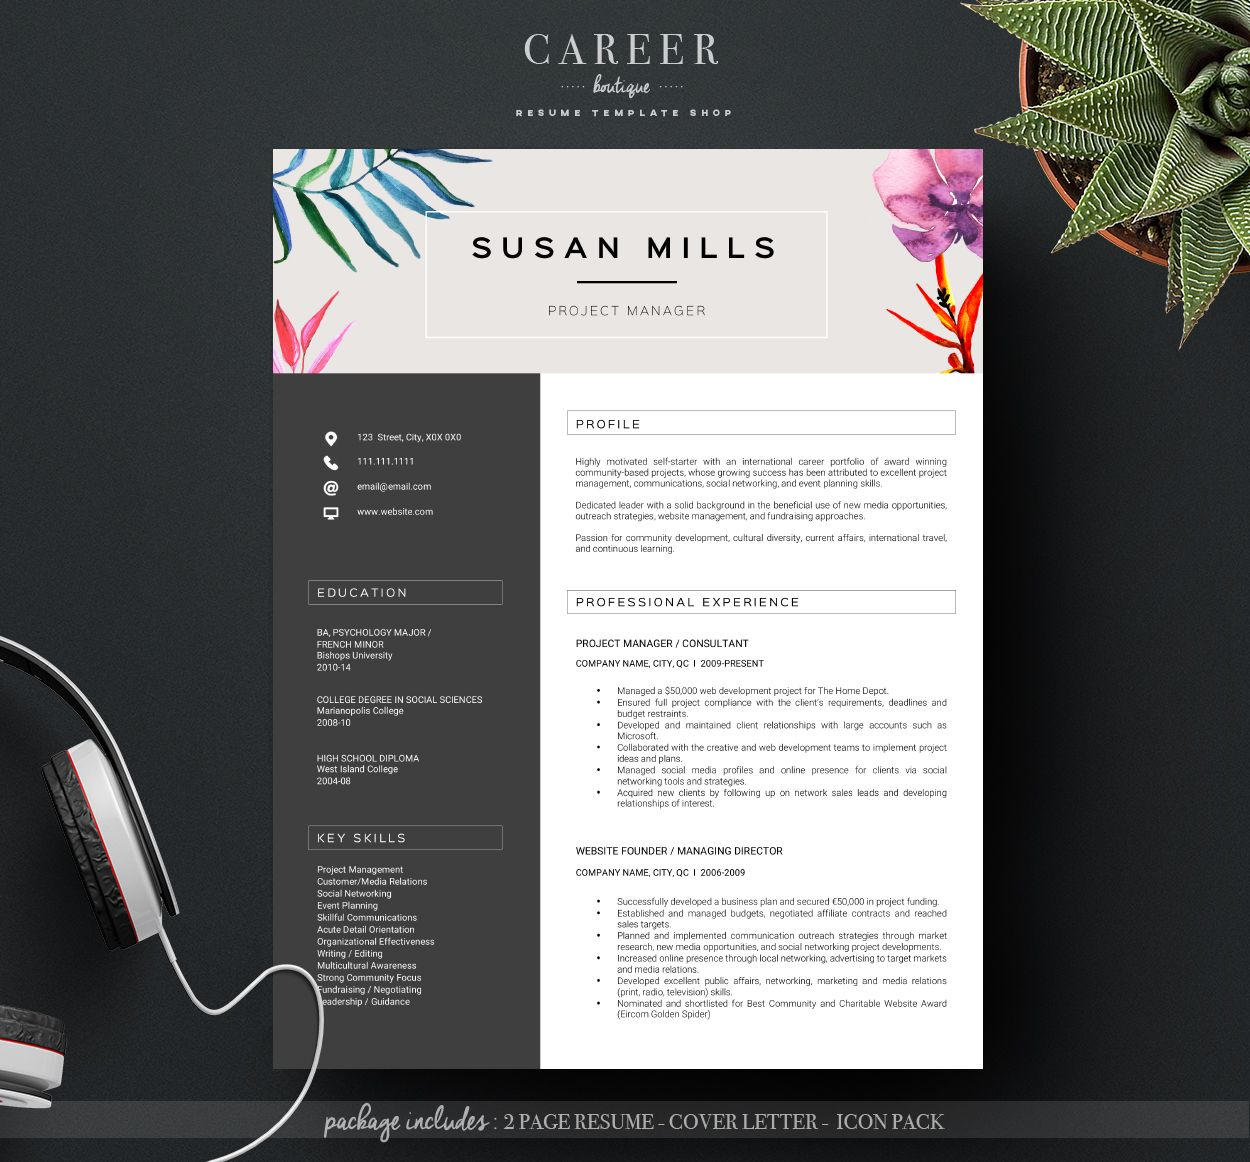 Modern Resume U0026 CoverLetter Template By Careerboutique On